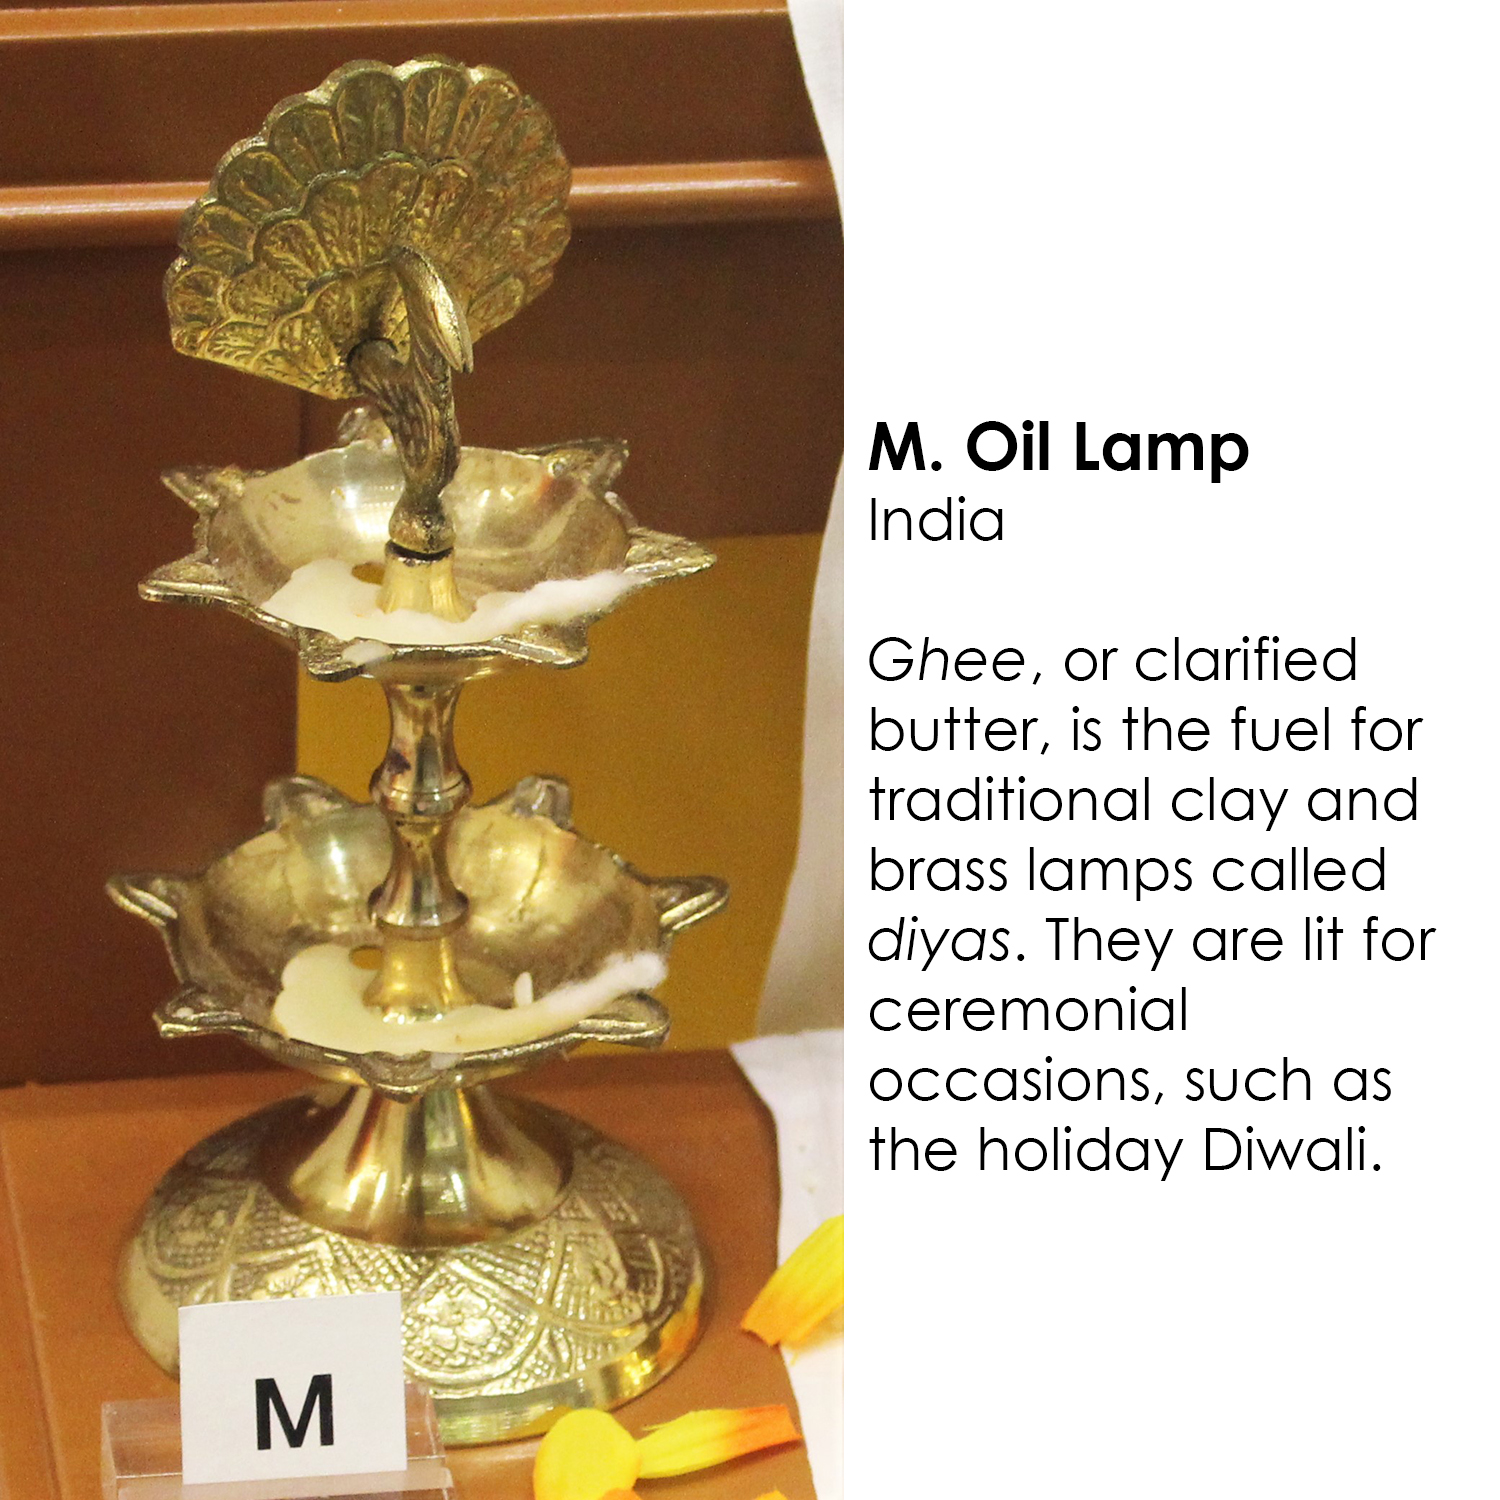 Hindu oil lamp from India